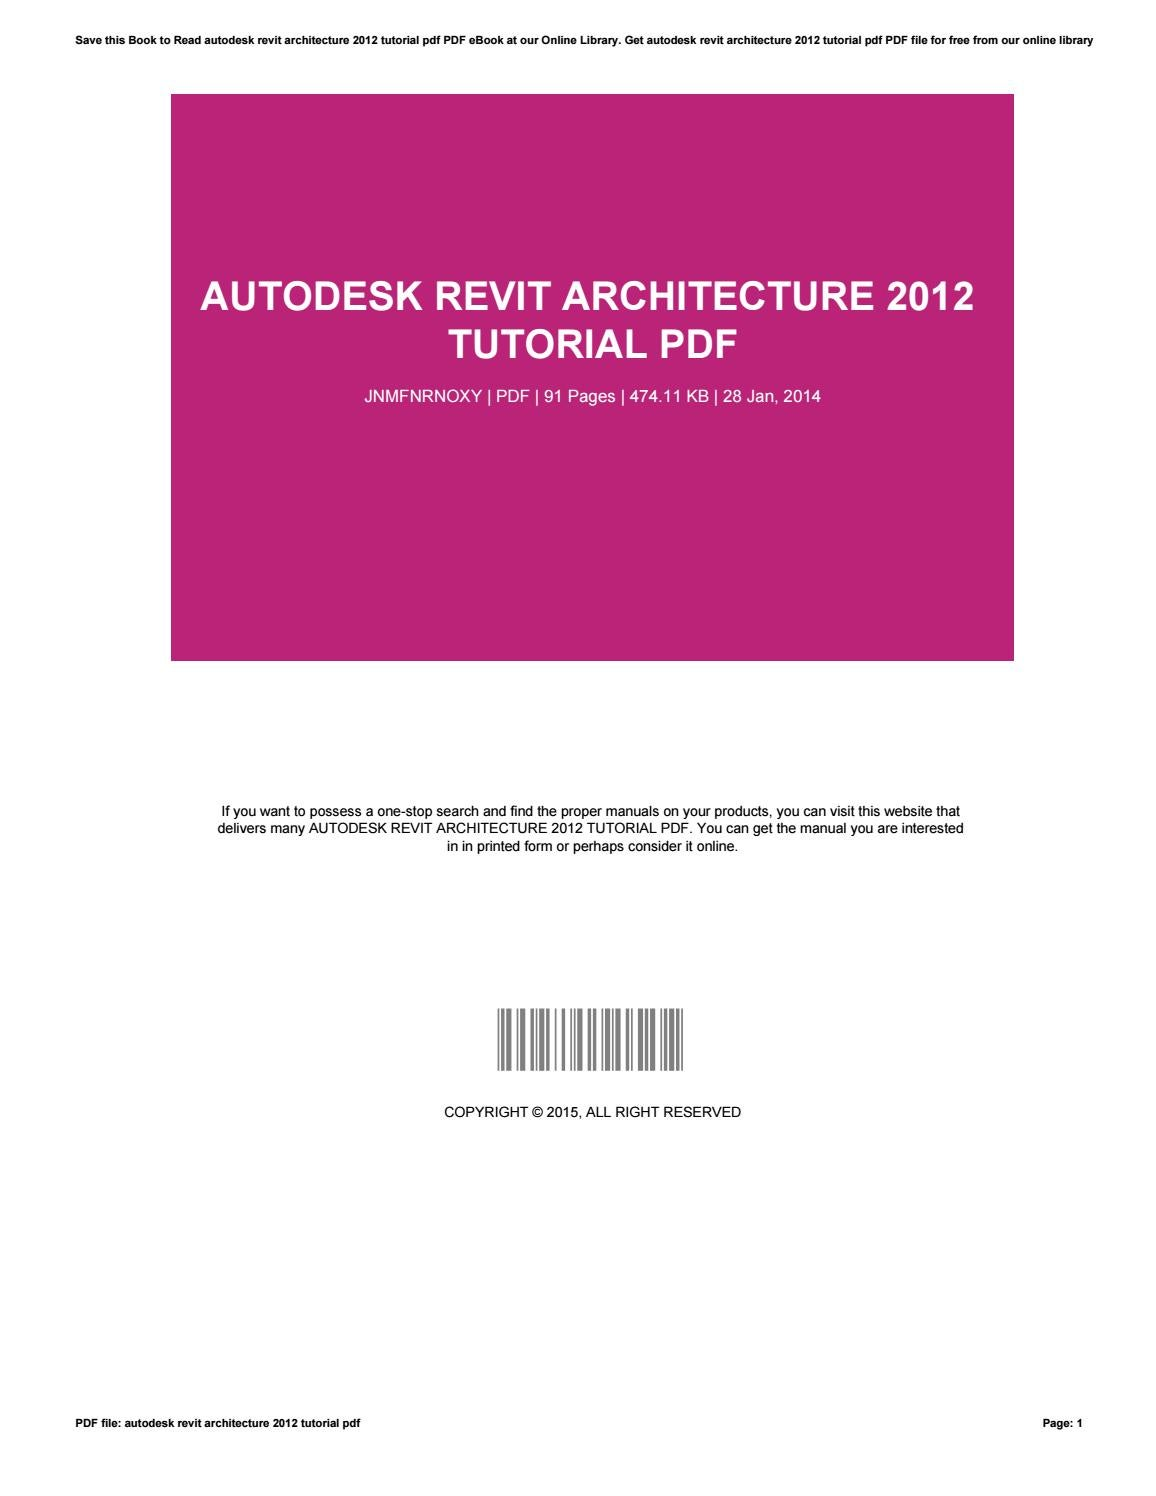 Autodesk revit architecture 2012 tutorial pdf by